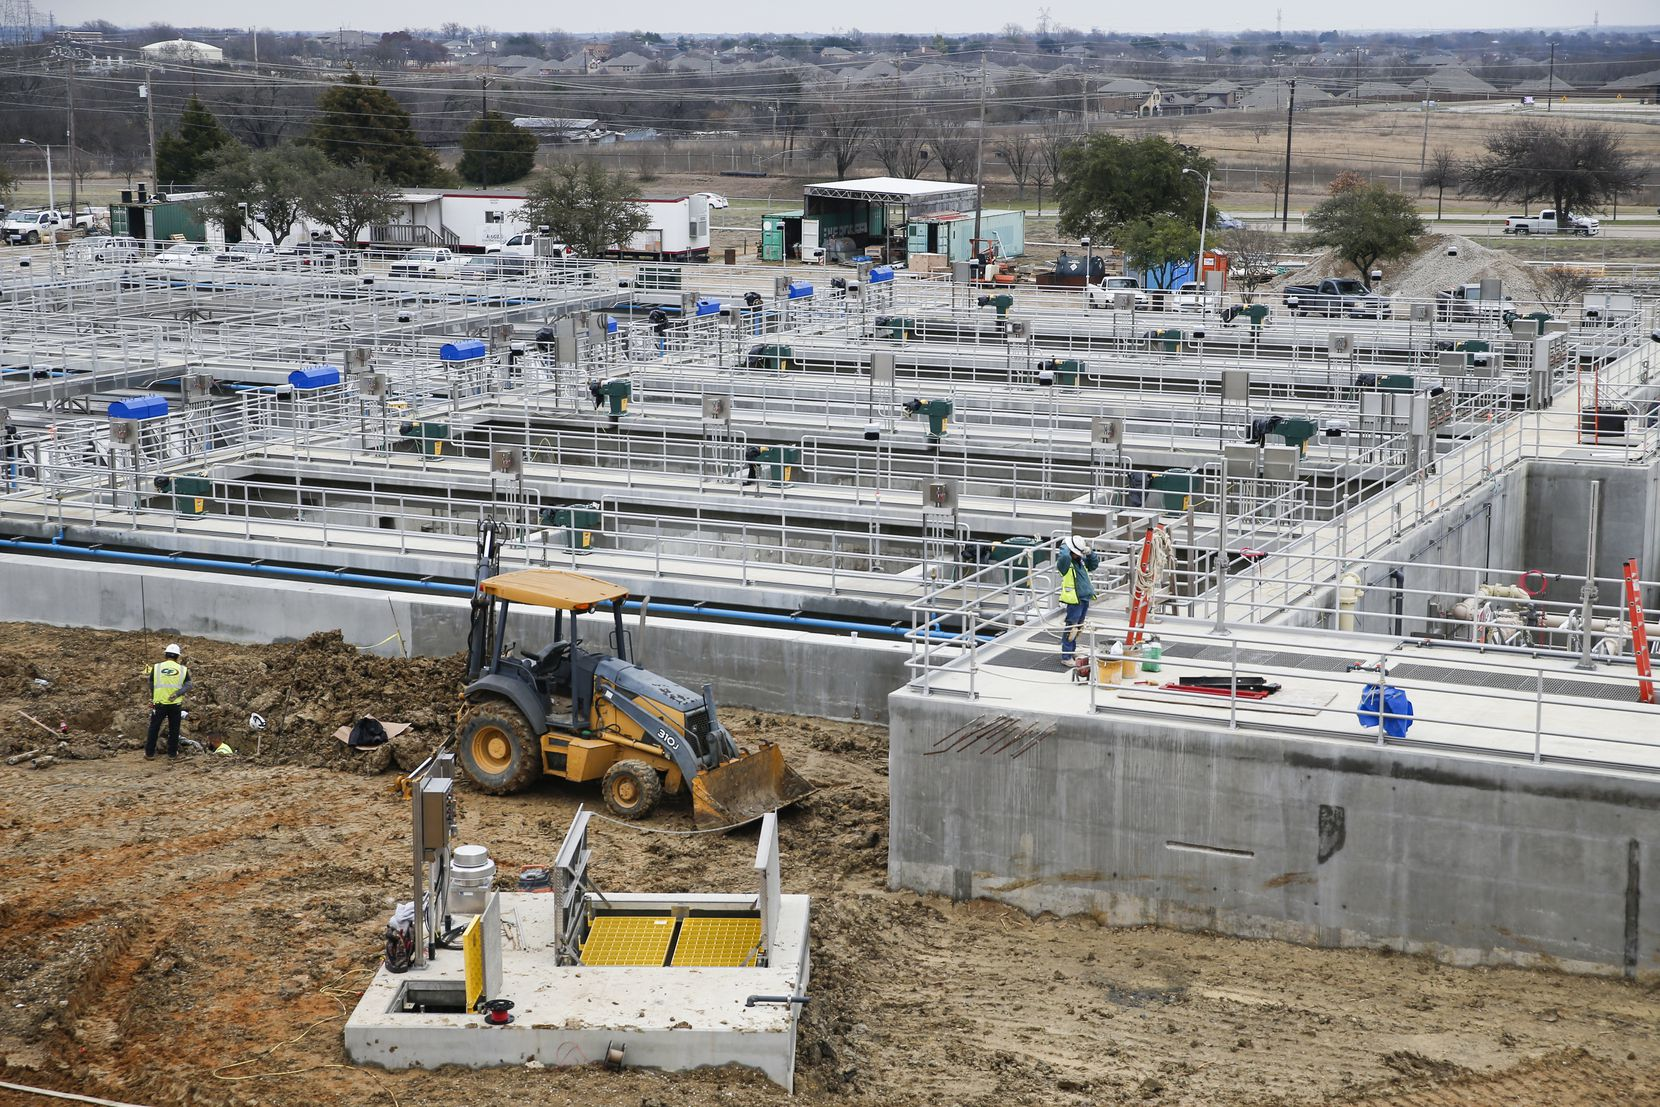 Construction crews work on upgrades to the Plant 1 settling basins at the North Texas Municipal Water District complex in Wylie. Annual payments by the 13 member cities help fund infrastructure and future projects.